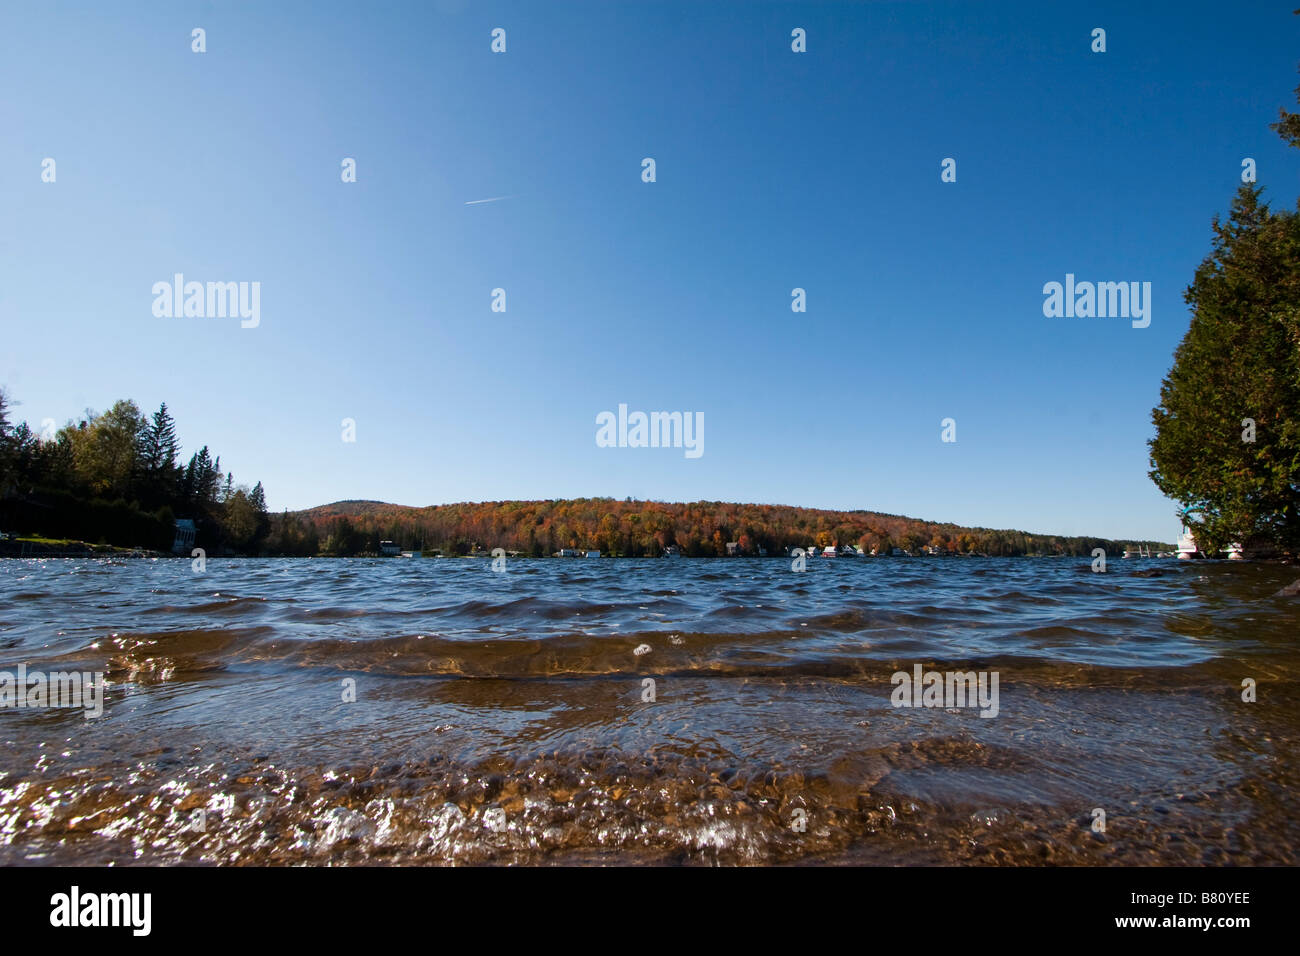 Water ripples lapping up on a shore RF October 7 2008 - Stock Image